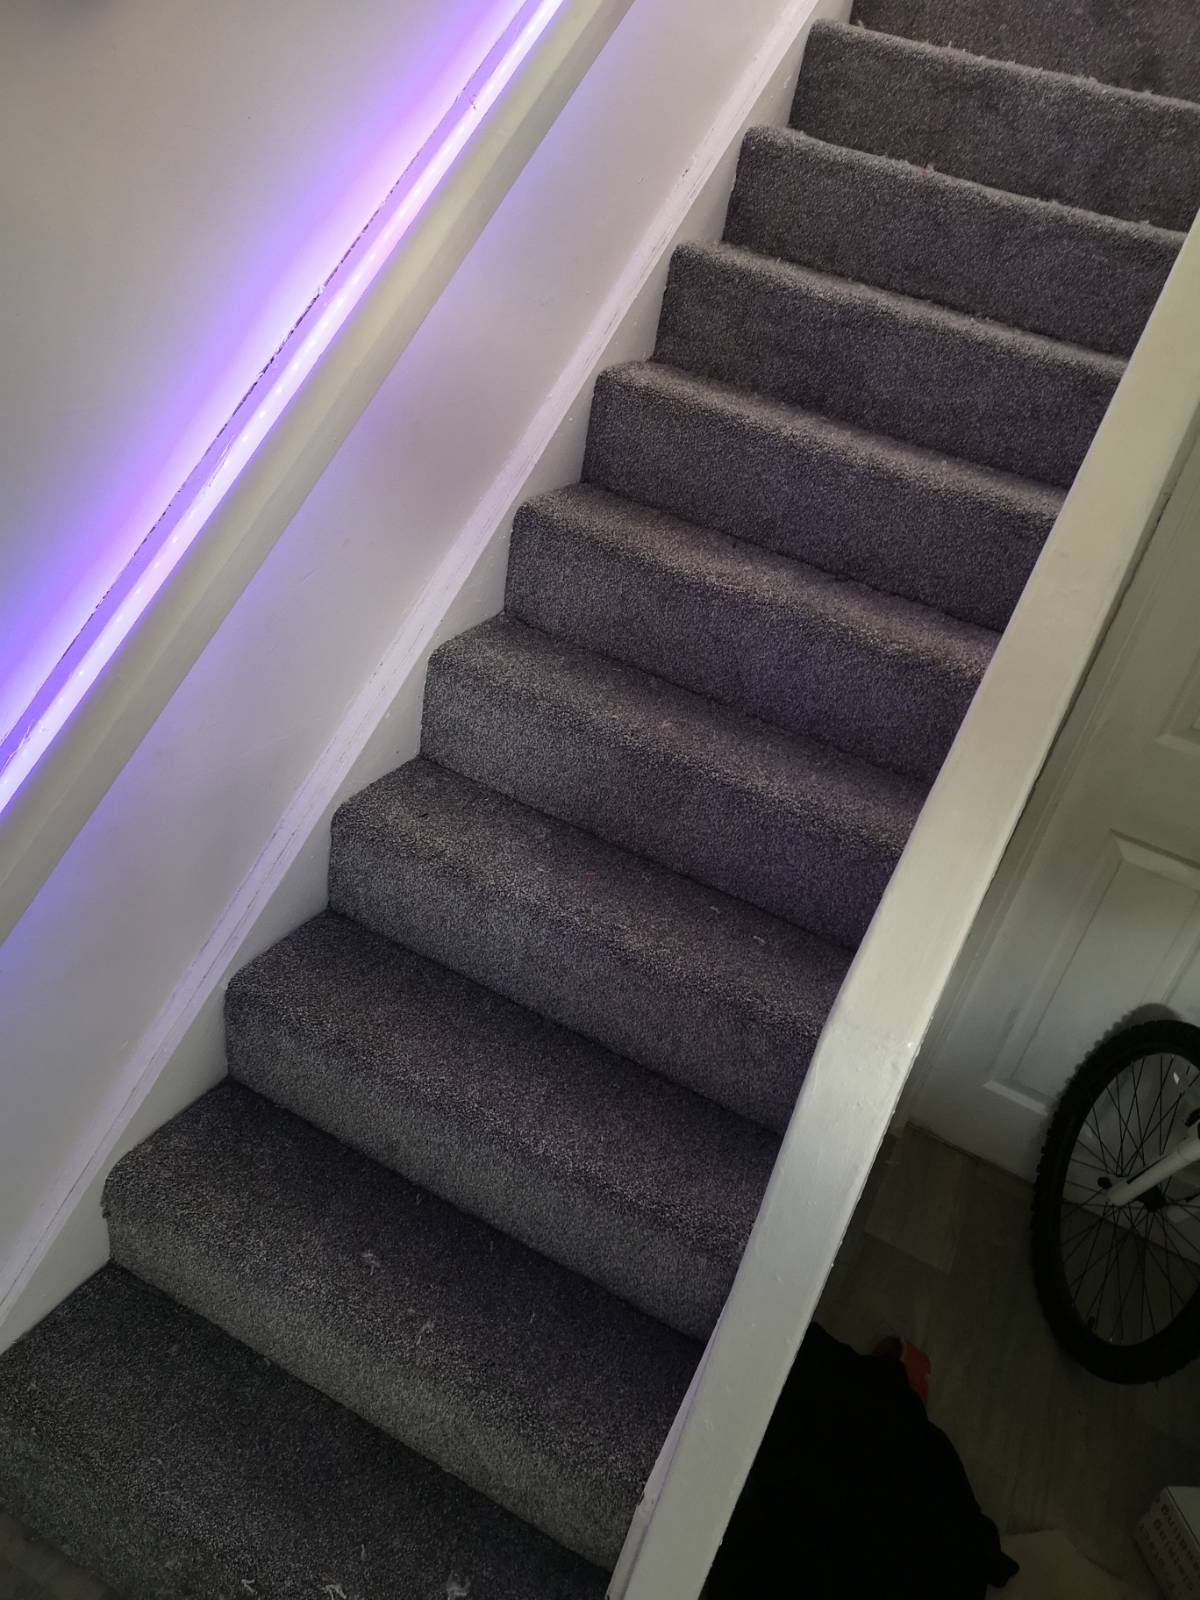 grey carpet fitting on staircase with purple lighting under banister